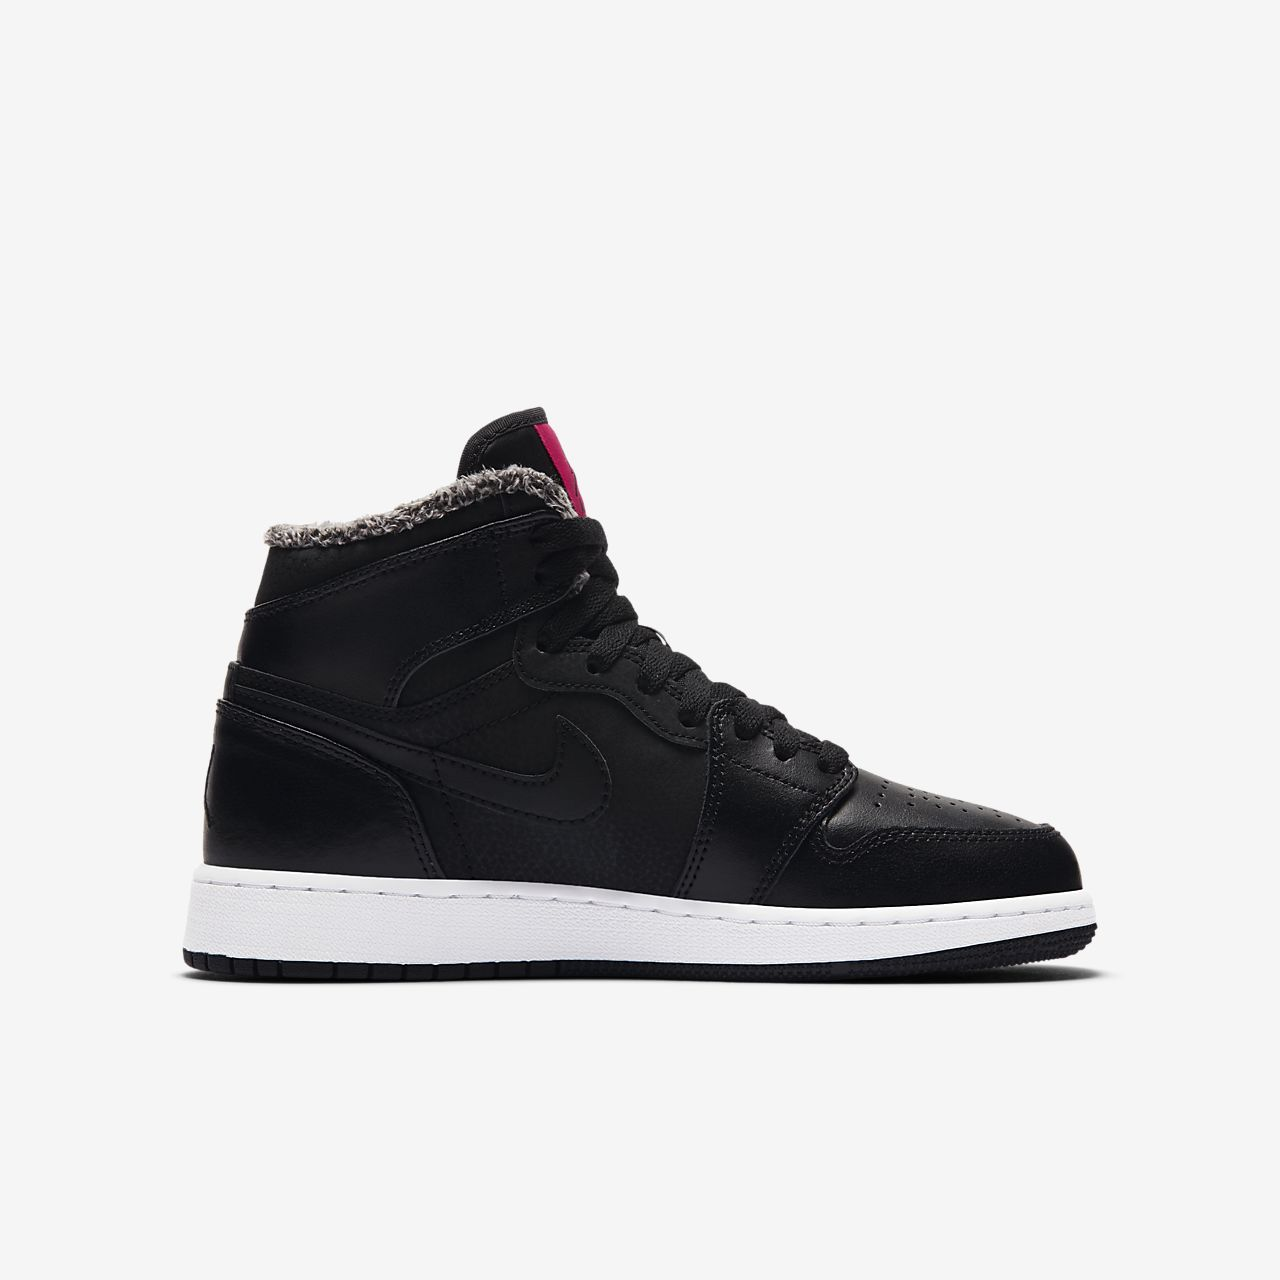 jordan air 1 retro kids nz